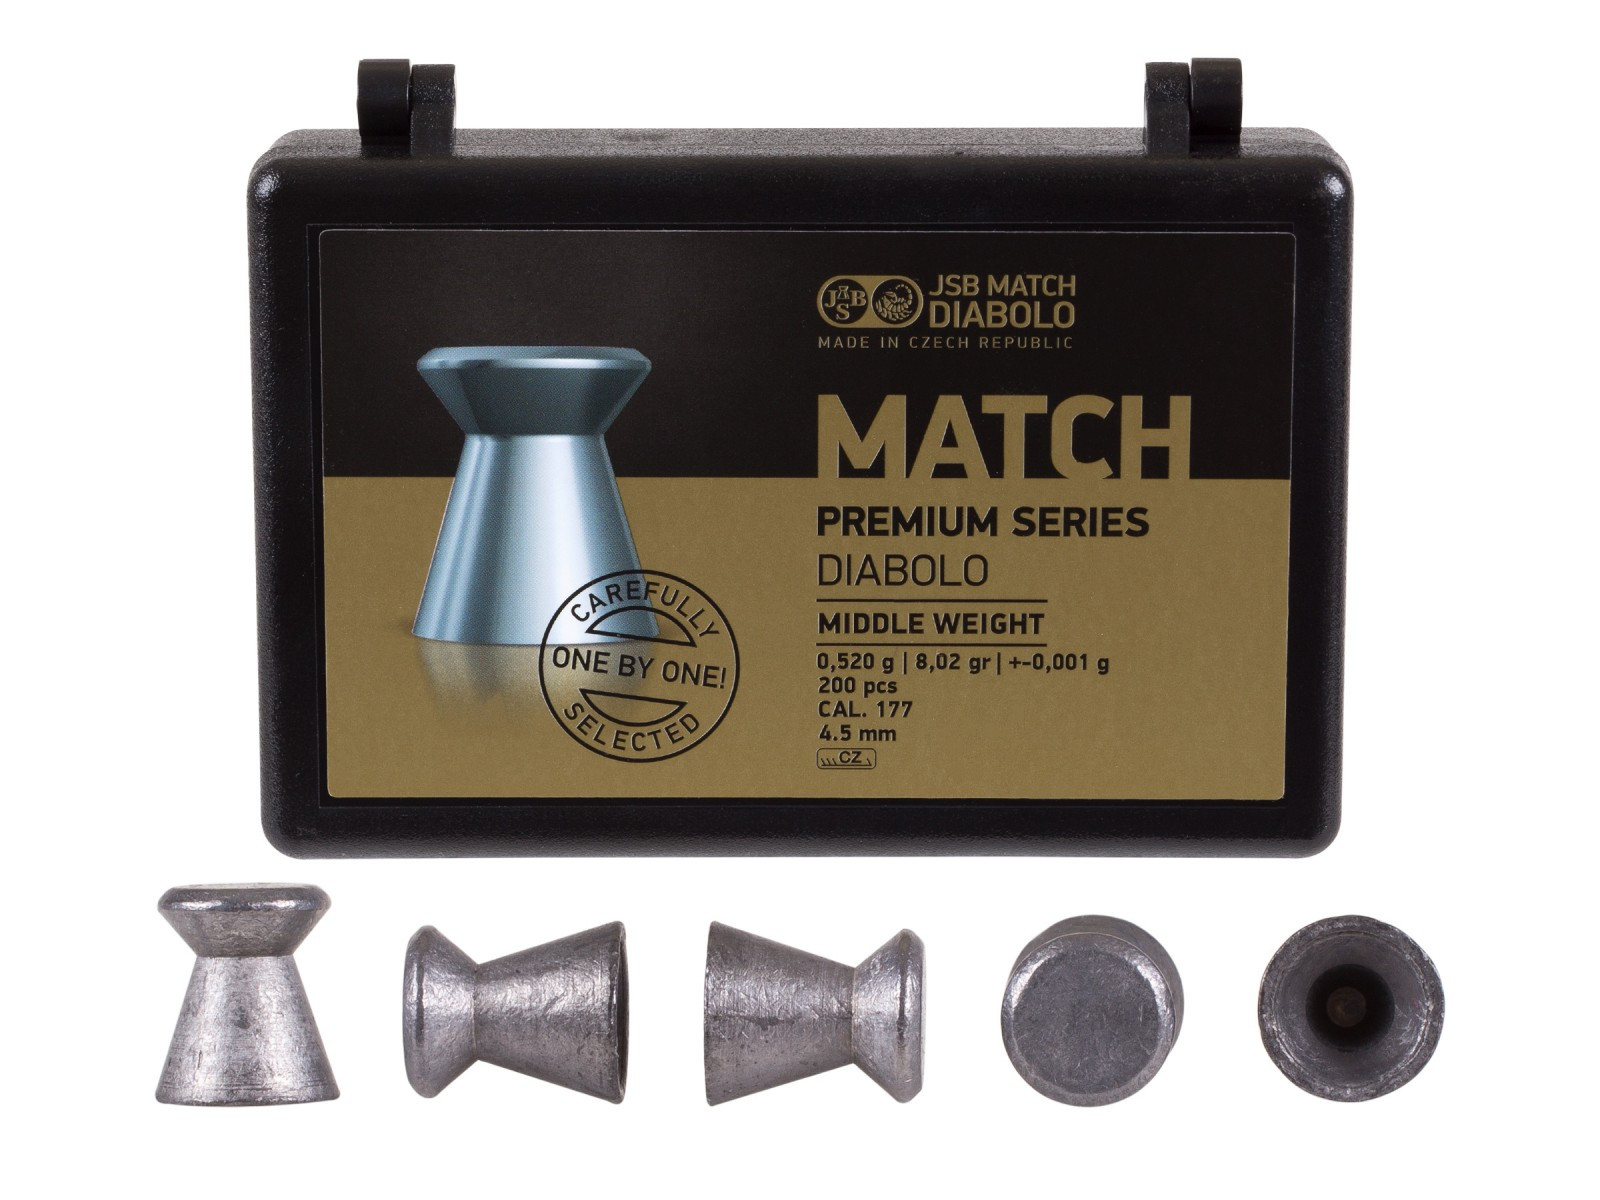 JSB Match Premium Middle Weight .177 Cal, 8.02 gr - 200 ct